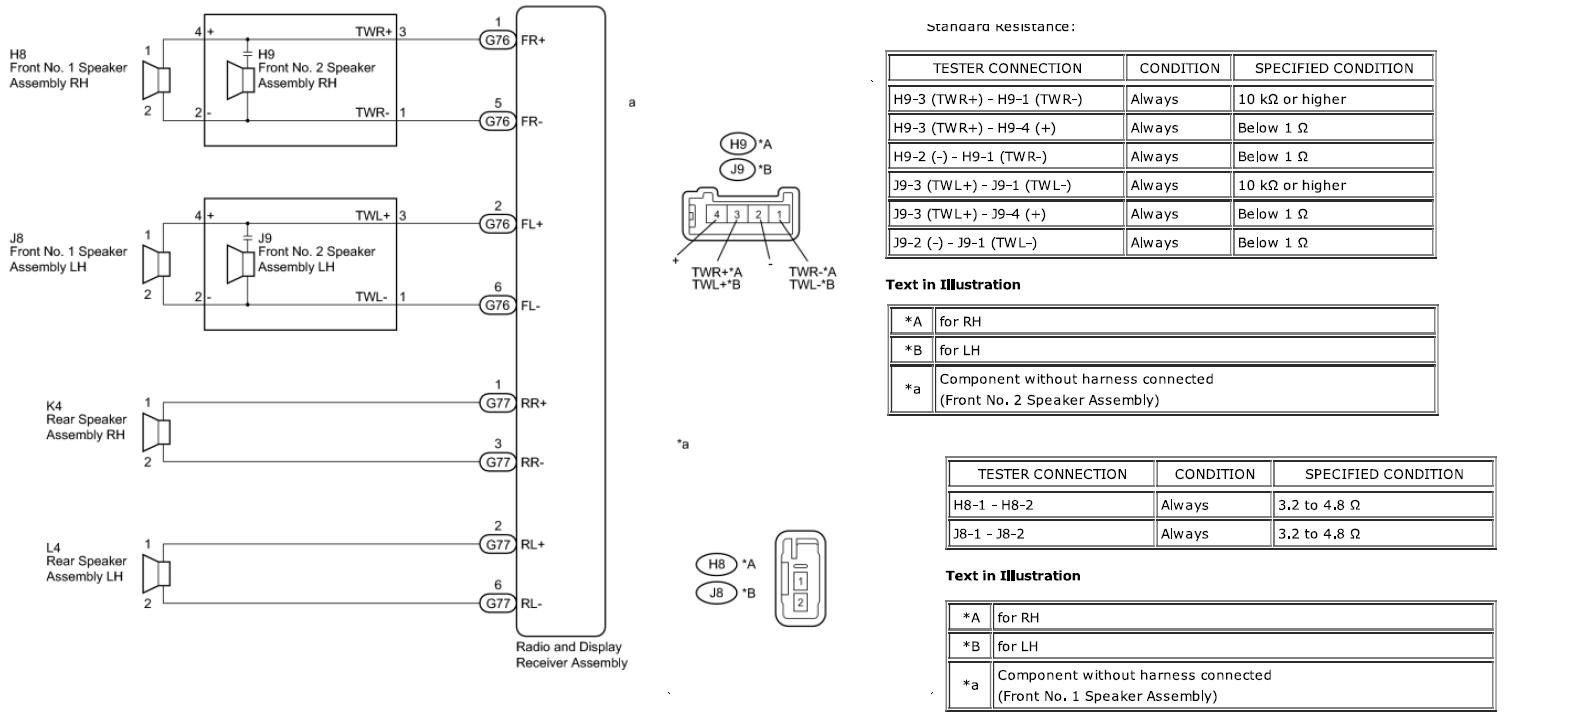 pioneer deh p4000ub wiring diagram efcaviation com pioneer fh-x700bt wiring harness diagram at gsmportal.co